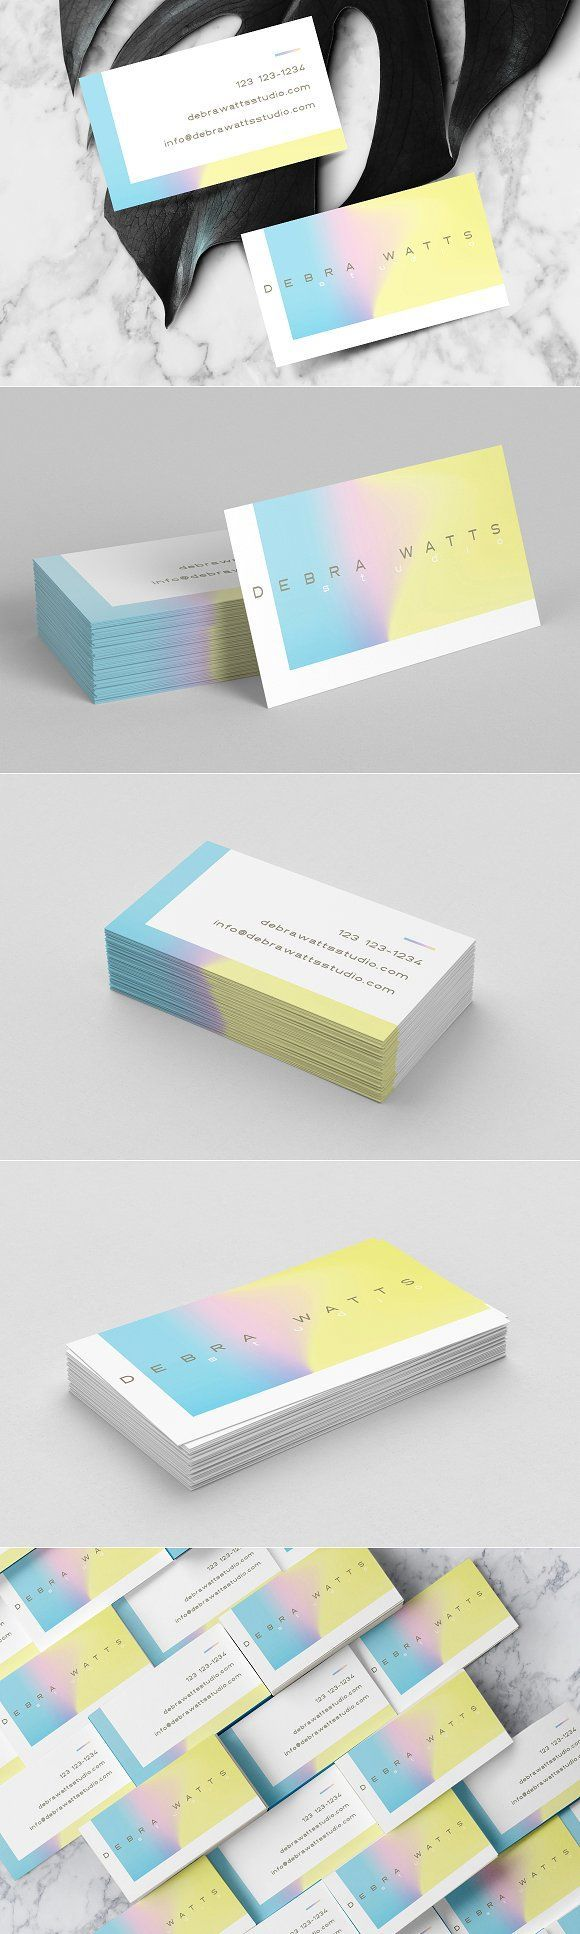 11819 best custom business cards images on pinterest logos feminine holographic business card by polar vectors on creativemarket magicingreecefo Image collections